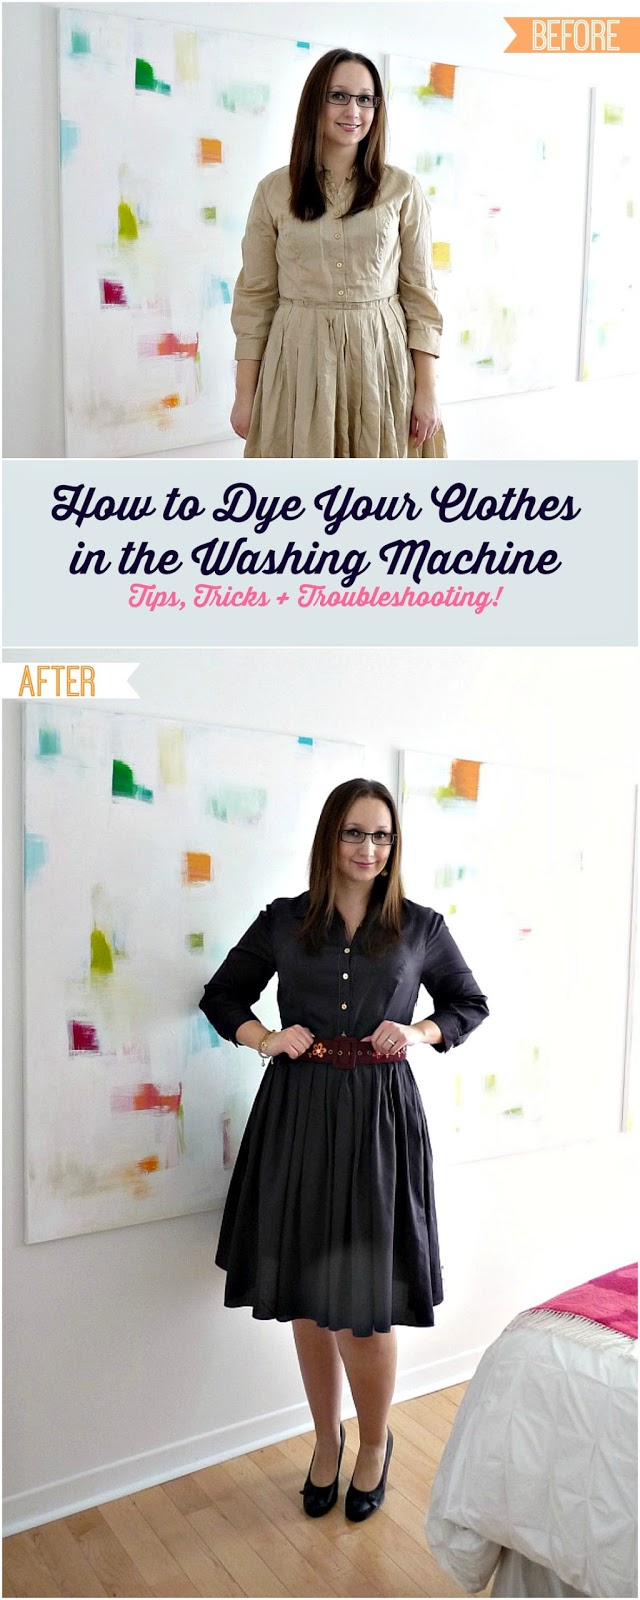 How to dye your clothes in the washine machine